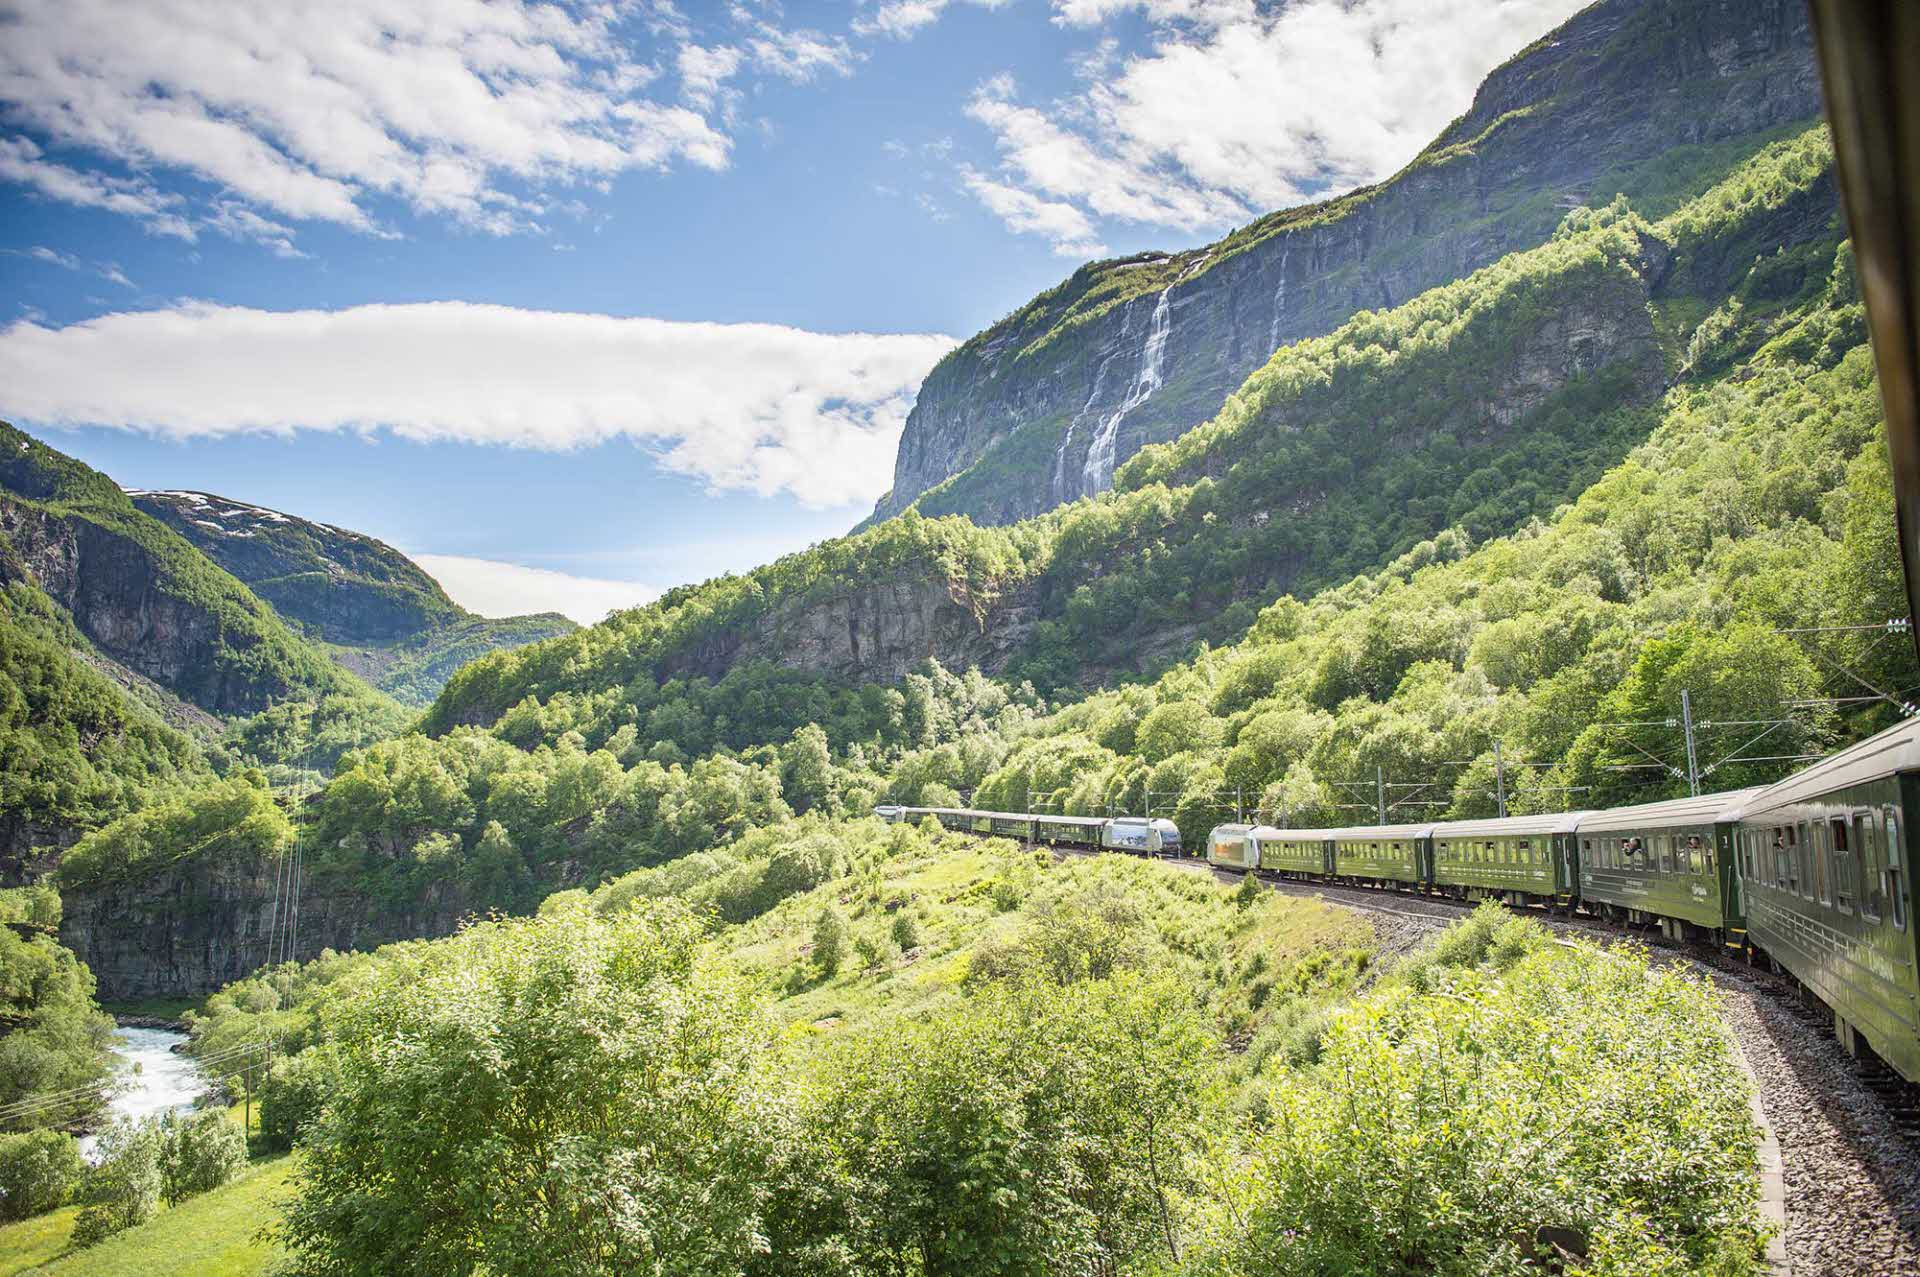 The Flam Railway trains passing each other in lush Flam valley with huge waterfall in the background and flowing river